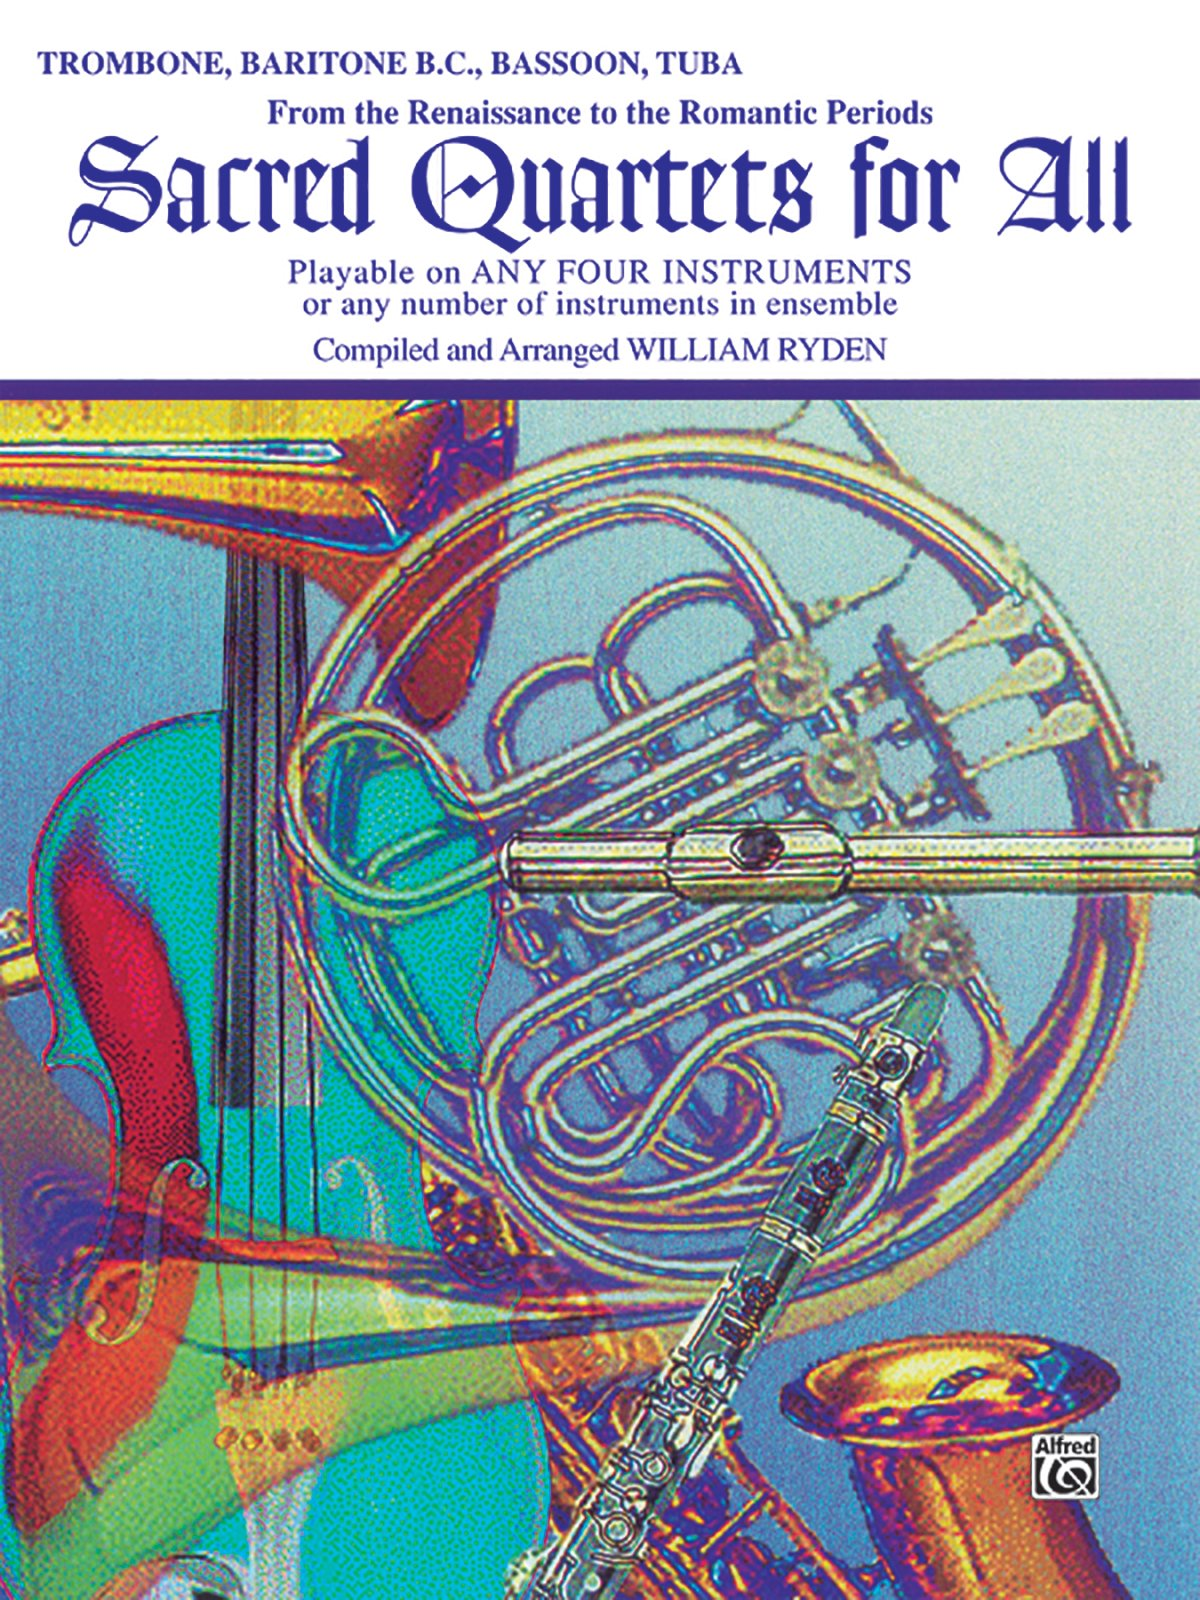 Sacred Quartets for All (From the Renaissance to the Romantic Periods): Trombone, Baritone B.C., Bassoon, Tuba (Sacred Instrumental Ensembles for All)